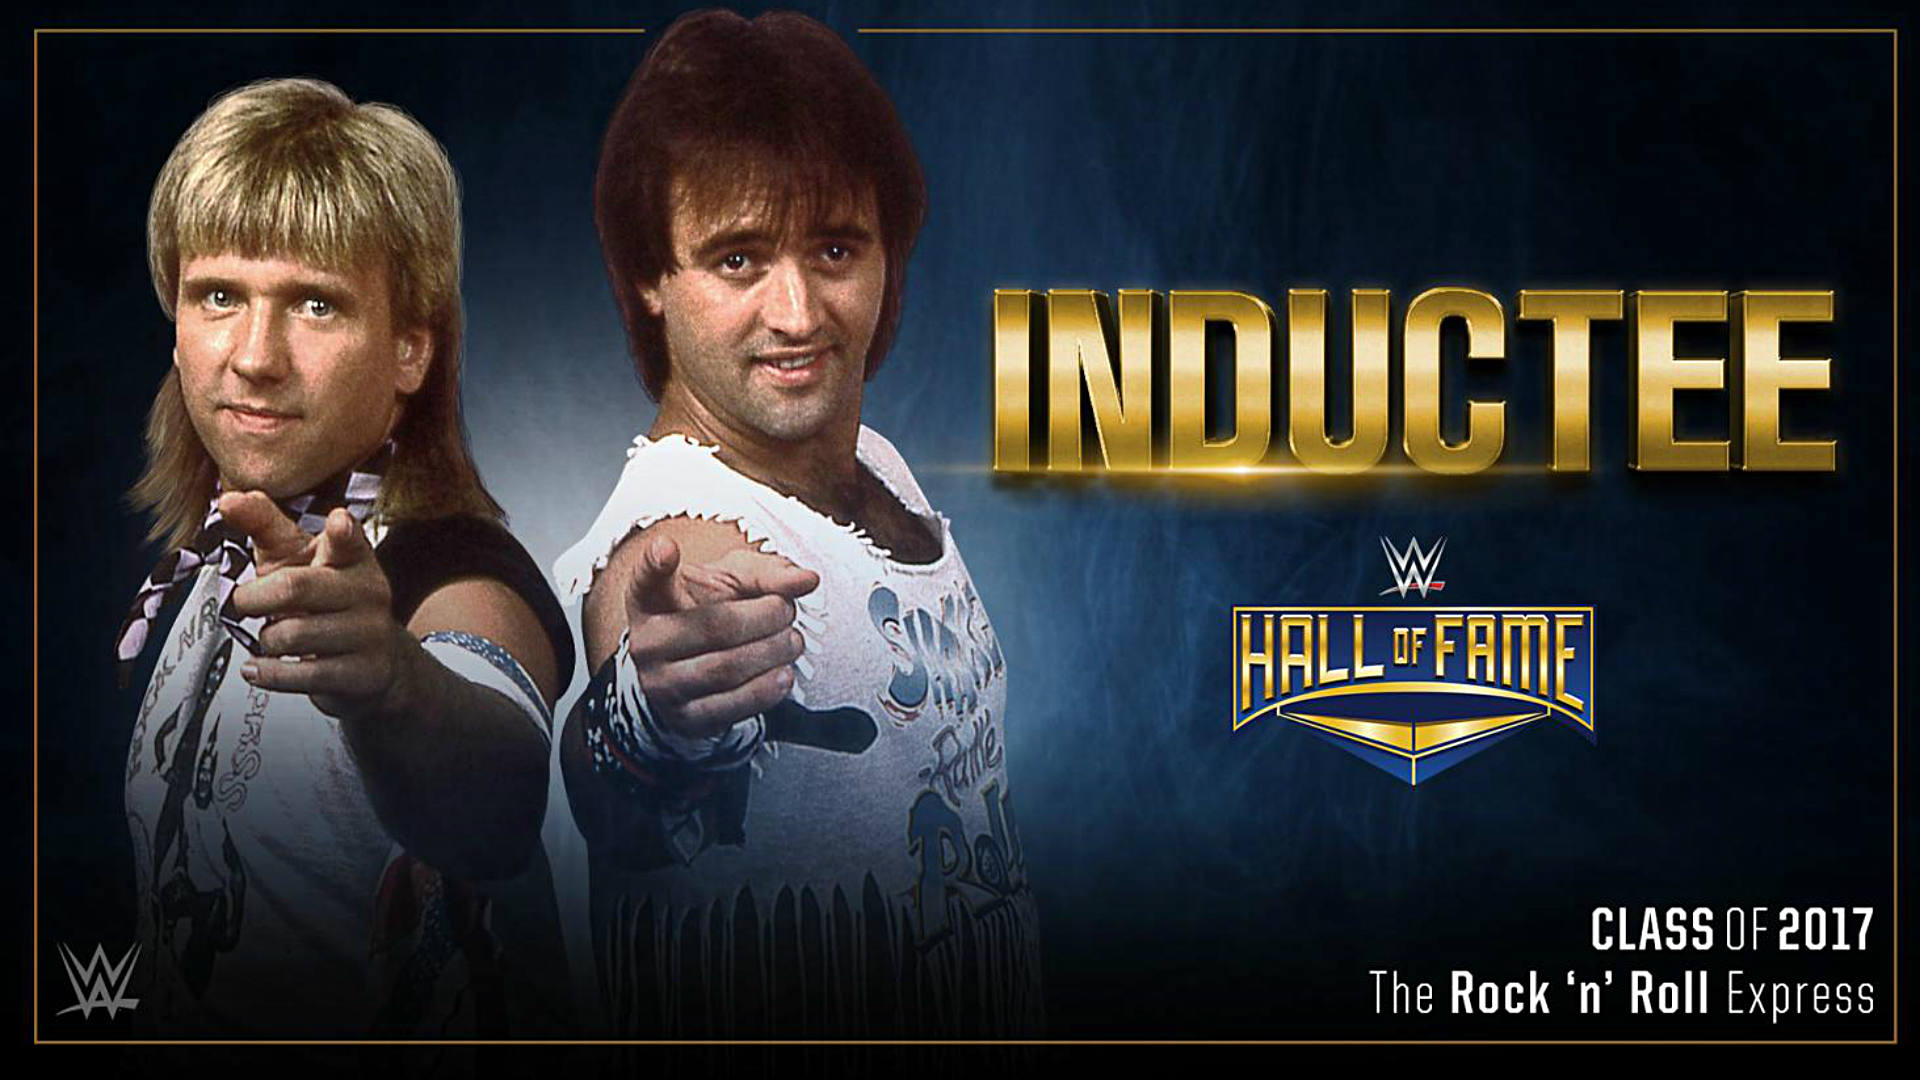 Rock 'N' Roll Express Chosen For 2017 WWE Hall of Fame